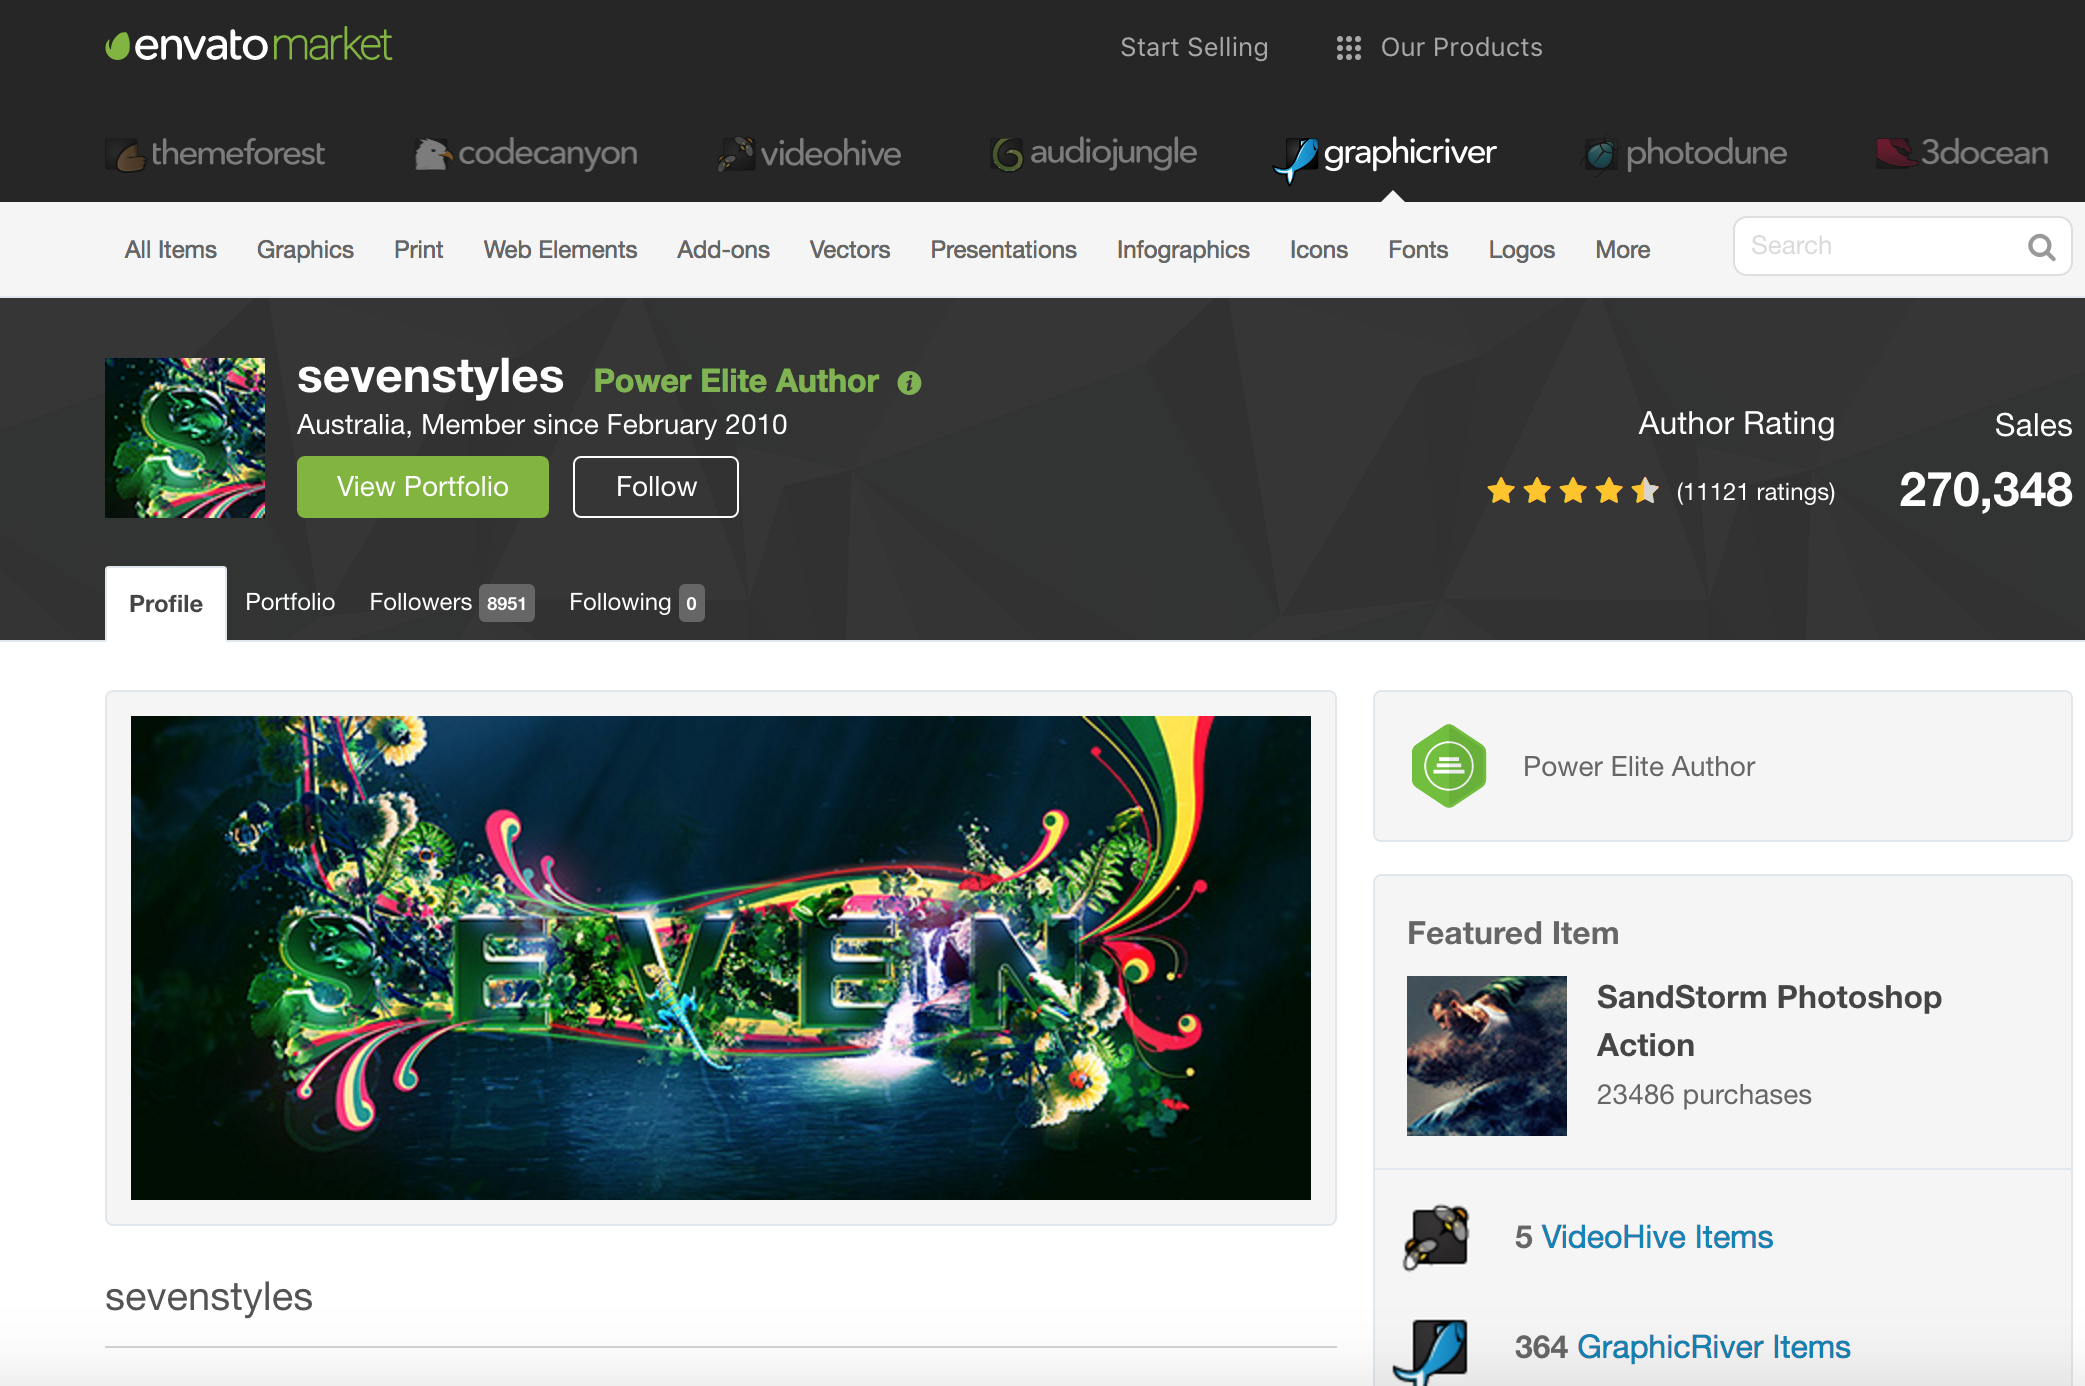 A popular store on the Envato Market. Just to give you an idea of what their storefronts look like.